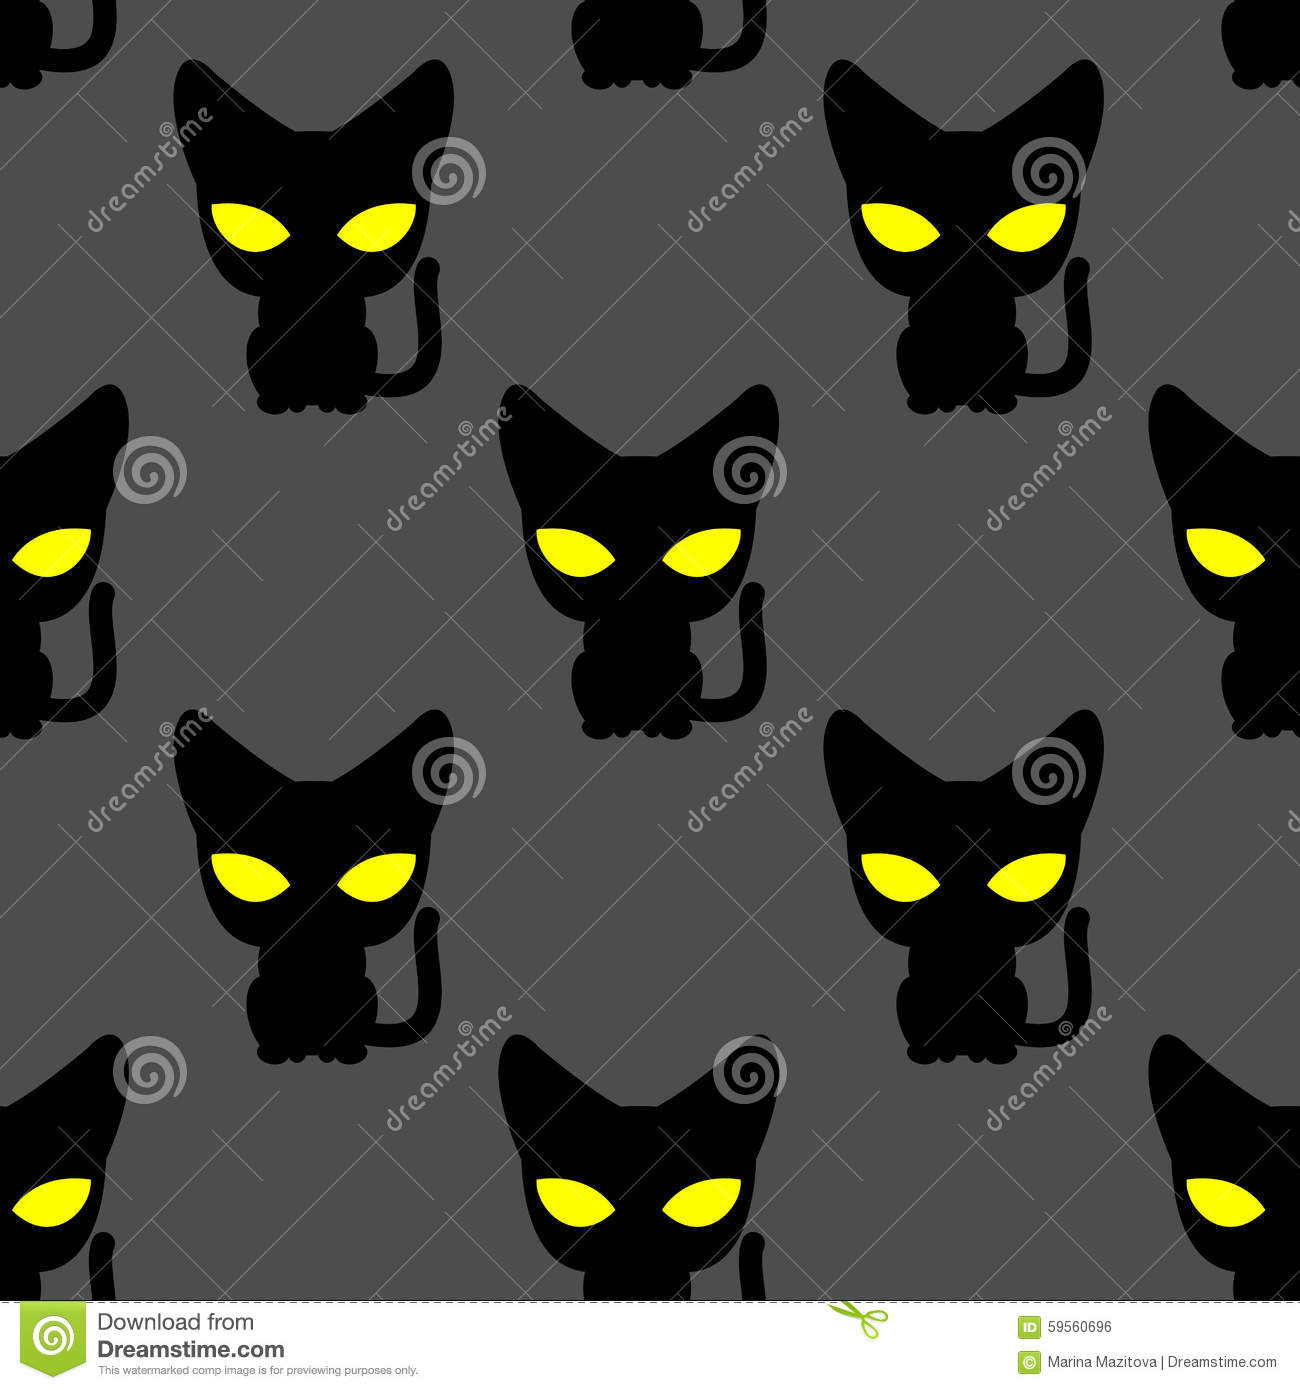 f577fb036d18 Illustration: Black Cat With Yellow Eyes At Night Seamless Pattern. Vector  Bac